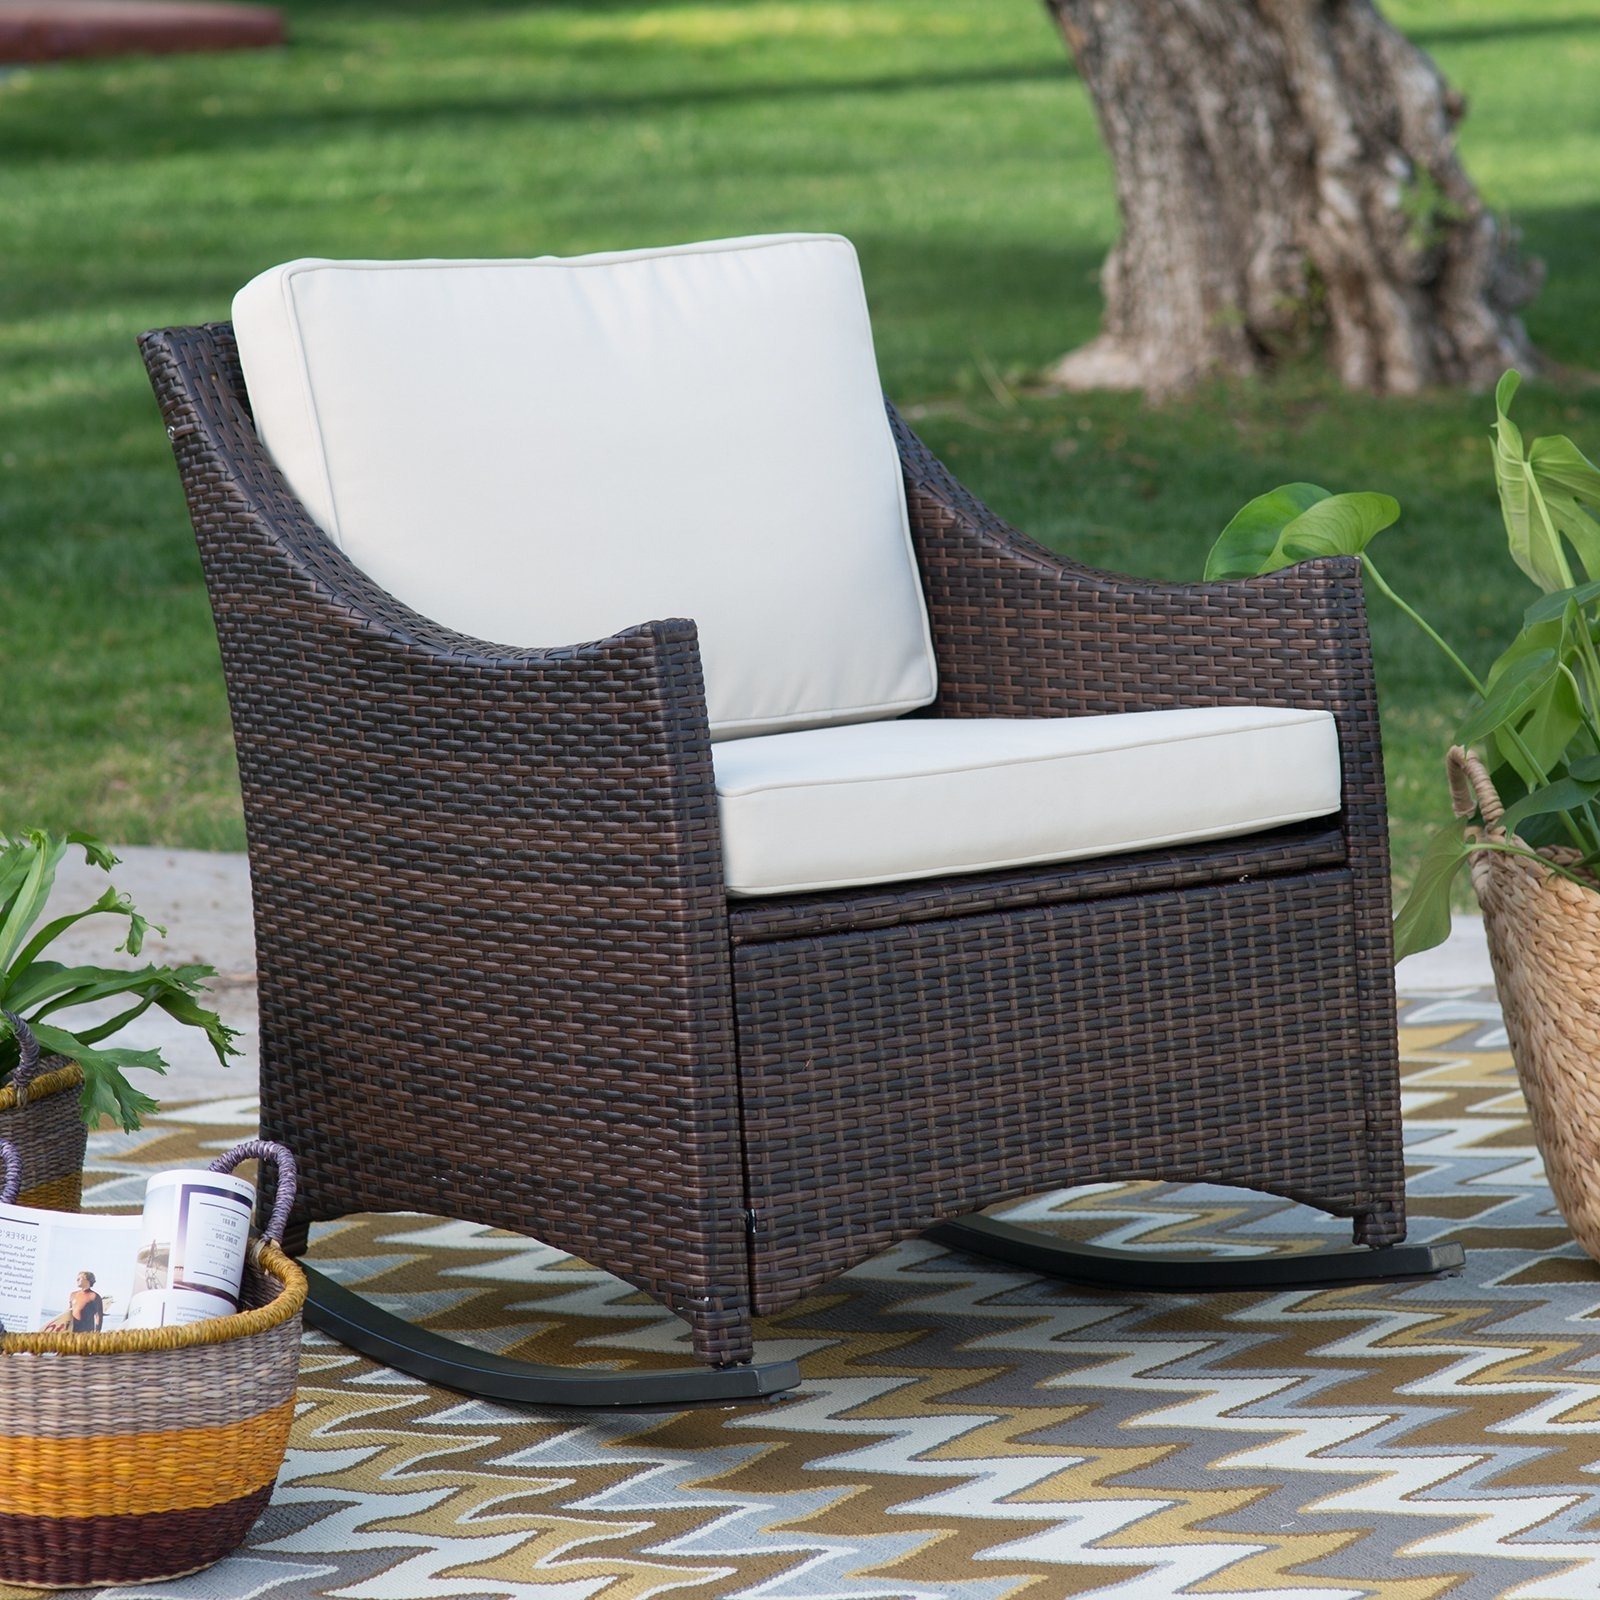 Most Up To Date Wicker Rocking Chairs For Outdoors Pertaining To Coral Coast Harrison Club Style Rocking Chair With Cushion – Walmart (View 6 of 15)